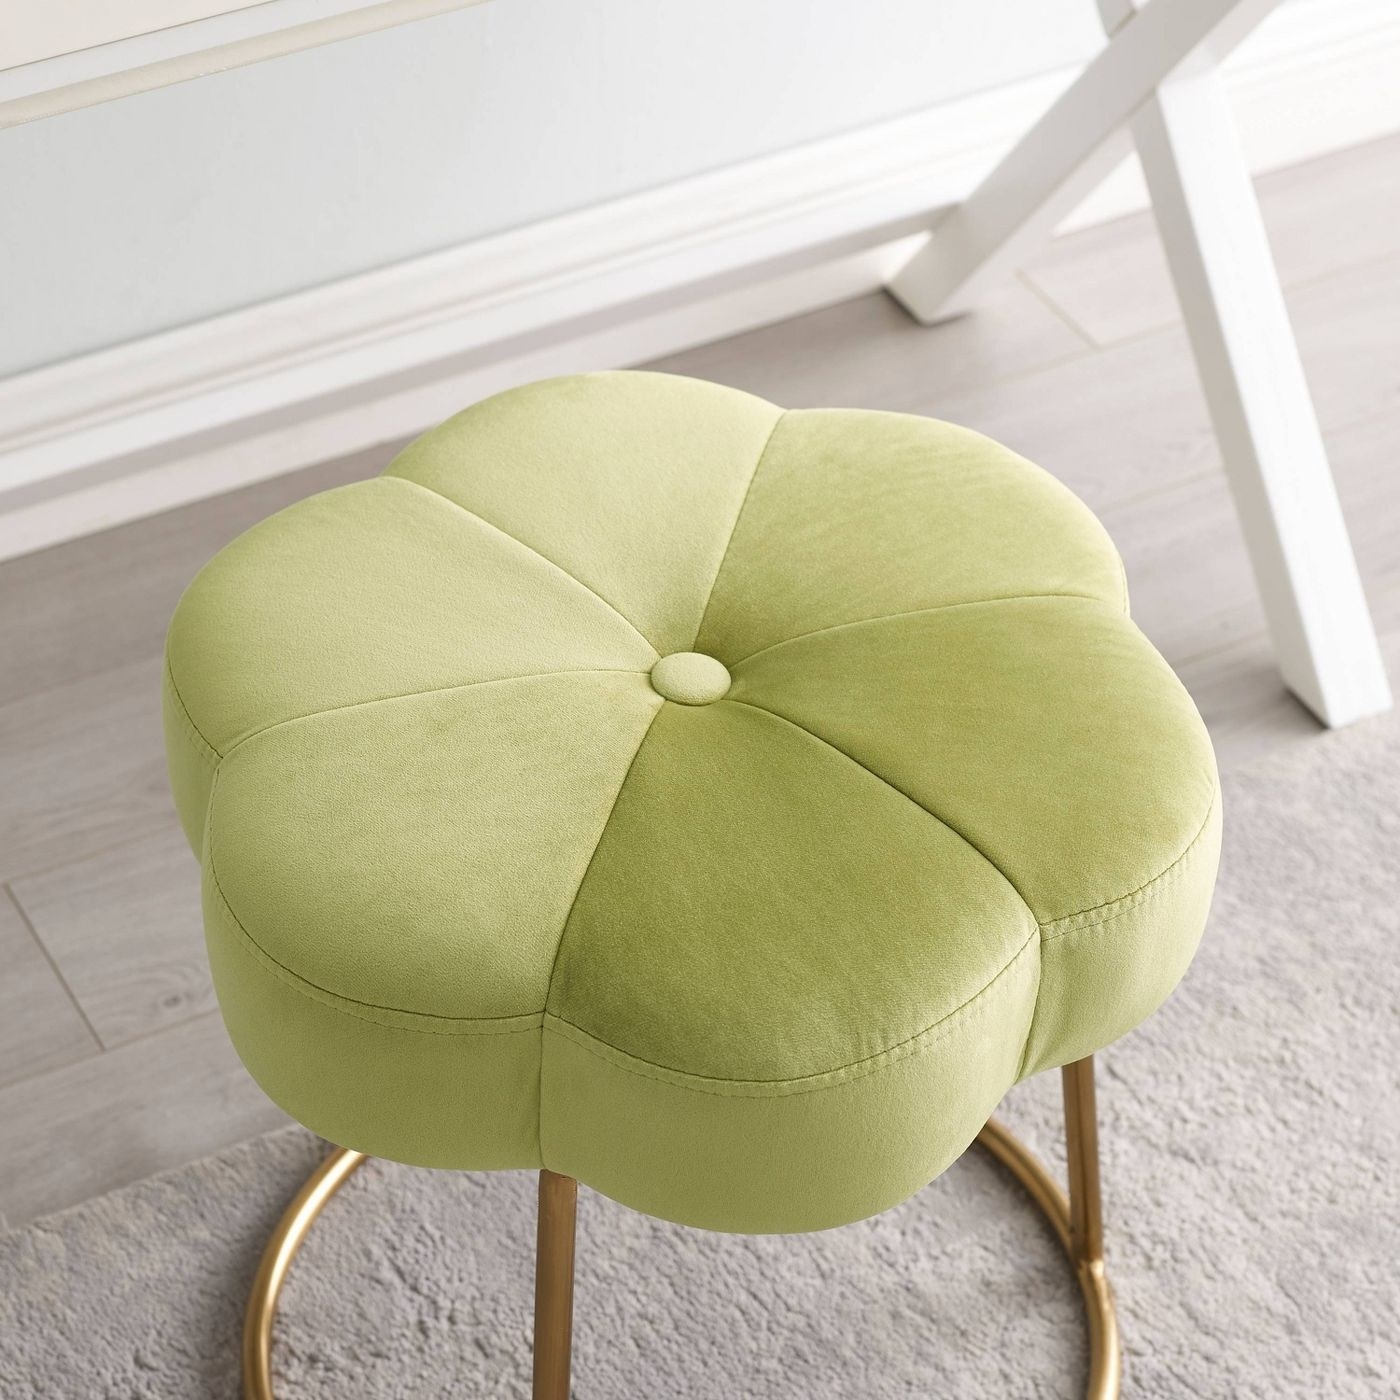 A green stool in a home